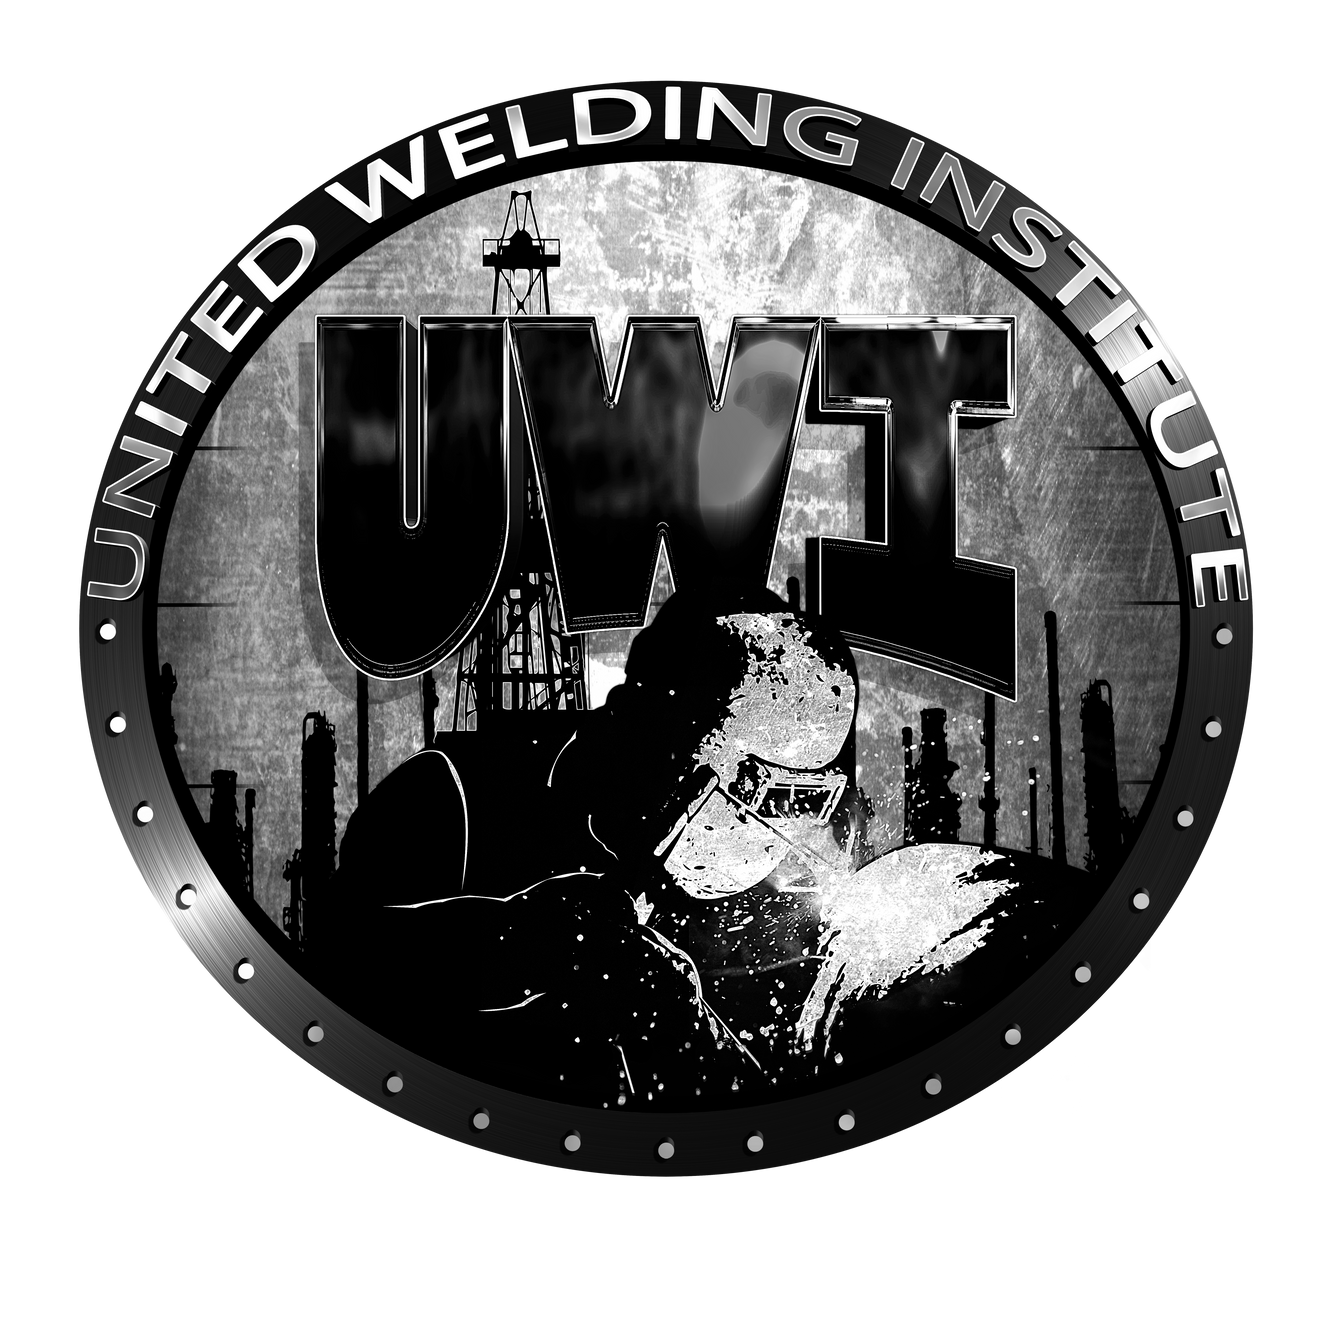 Get an Introduction to Metal Recycling united welding processes (can) inc